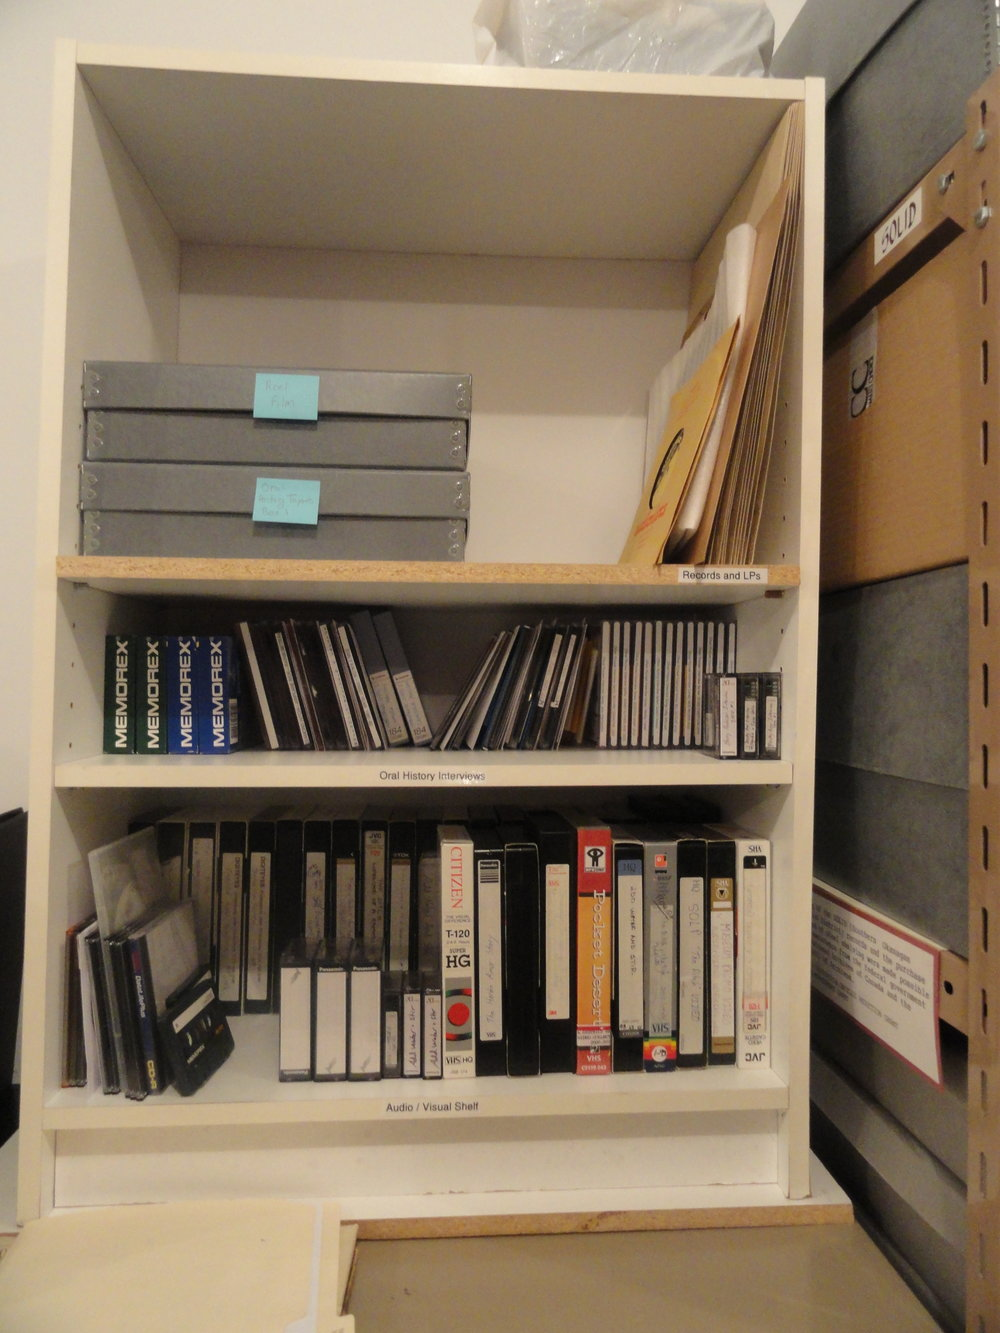 Our audio-visual shelf was also a wood composite, with items stacked several items deep on the shelves, making access difficult. Most items were also exposed to dust and UV radiation.